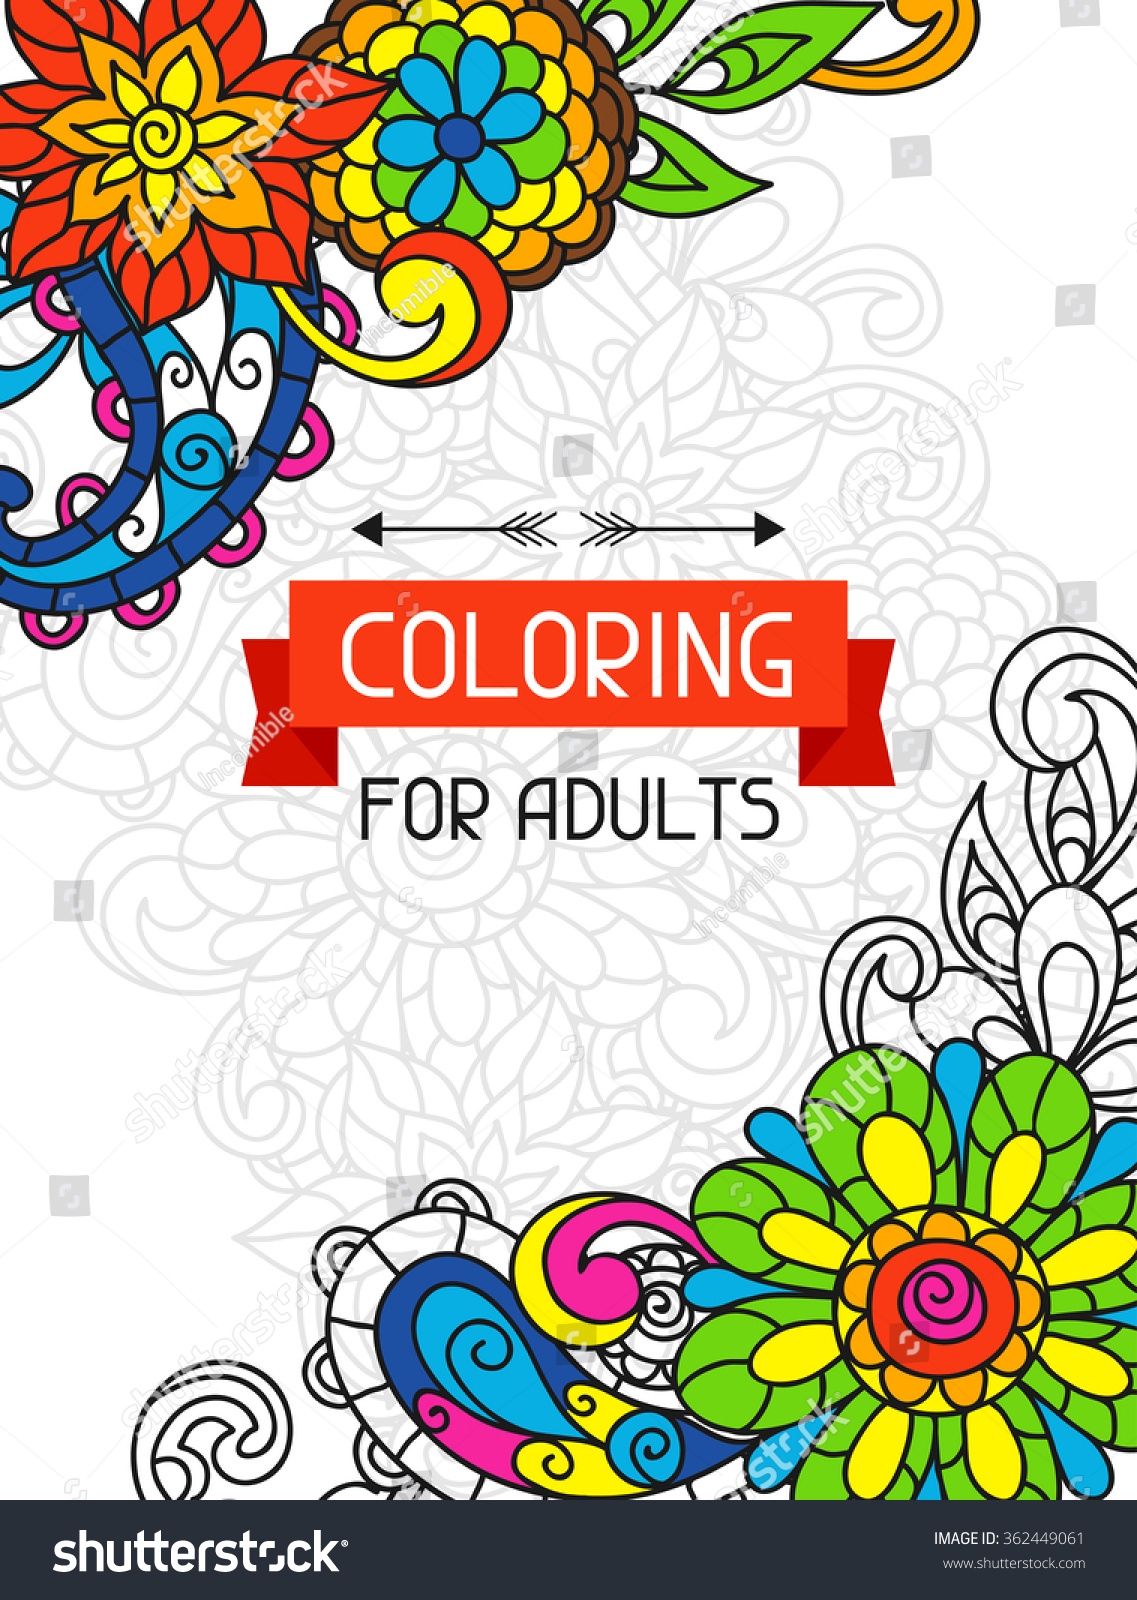 Adult Coloring Book Design For Cover Illustration